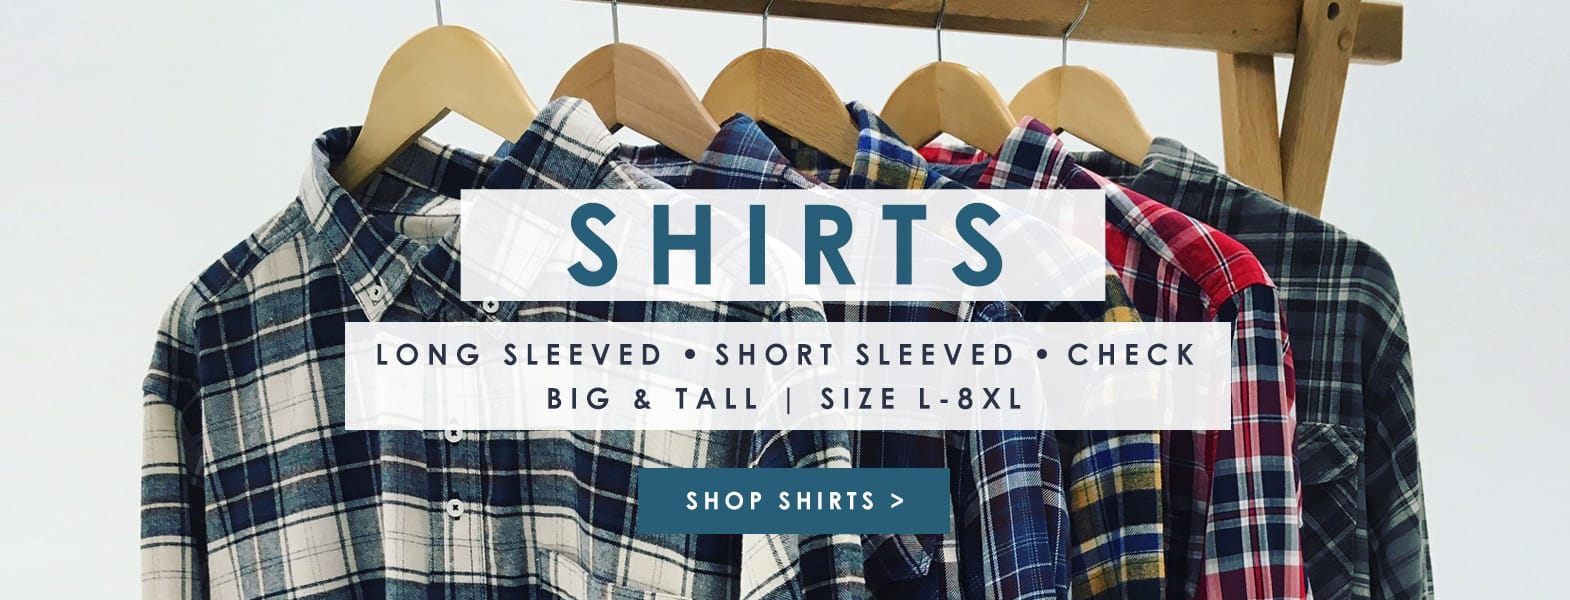 Mens Shirts in sizes L-8XL